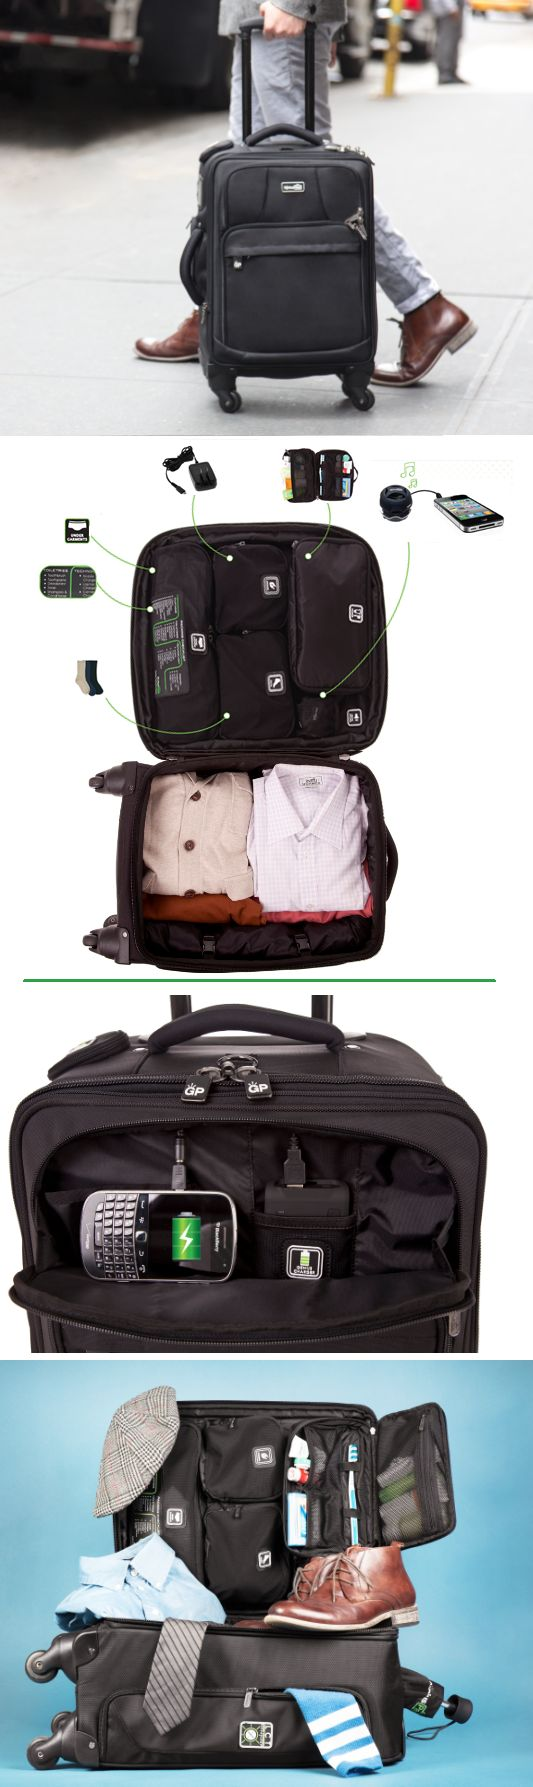 This carry-on does literally everything, including charging all your devices and compressing your laundry. So smart!